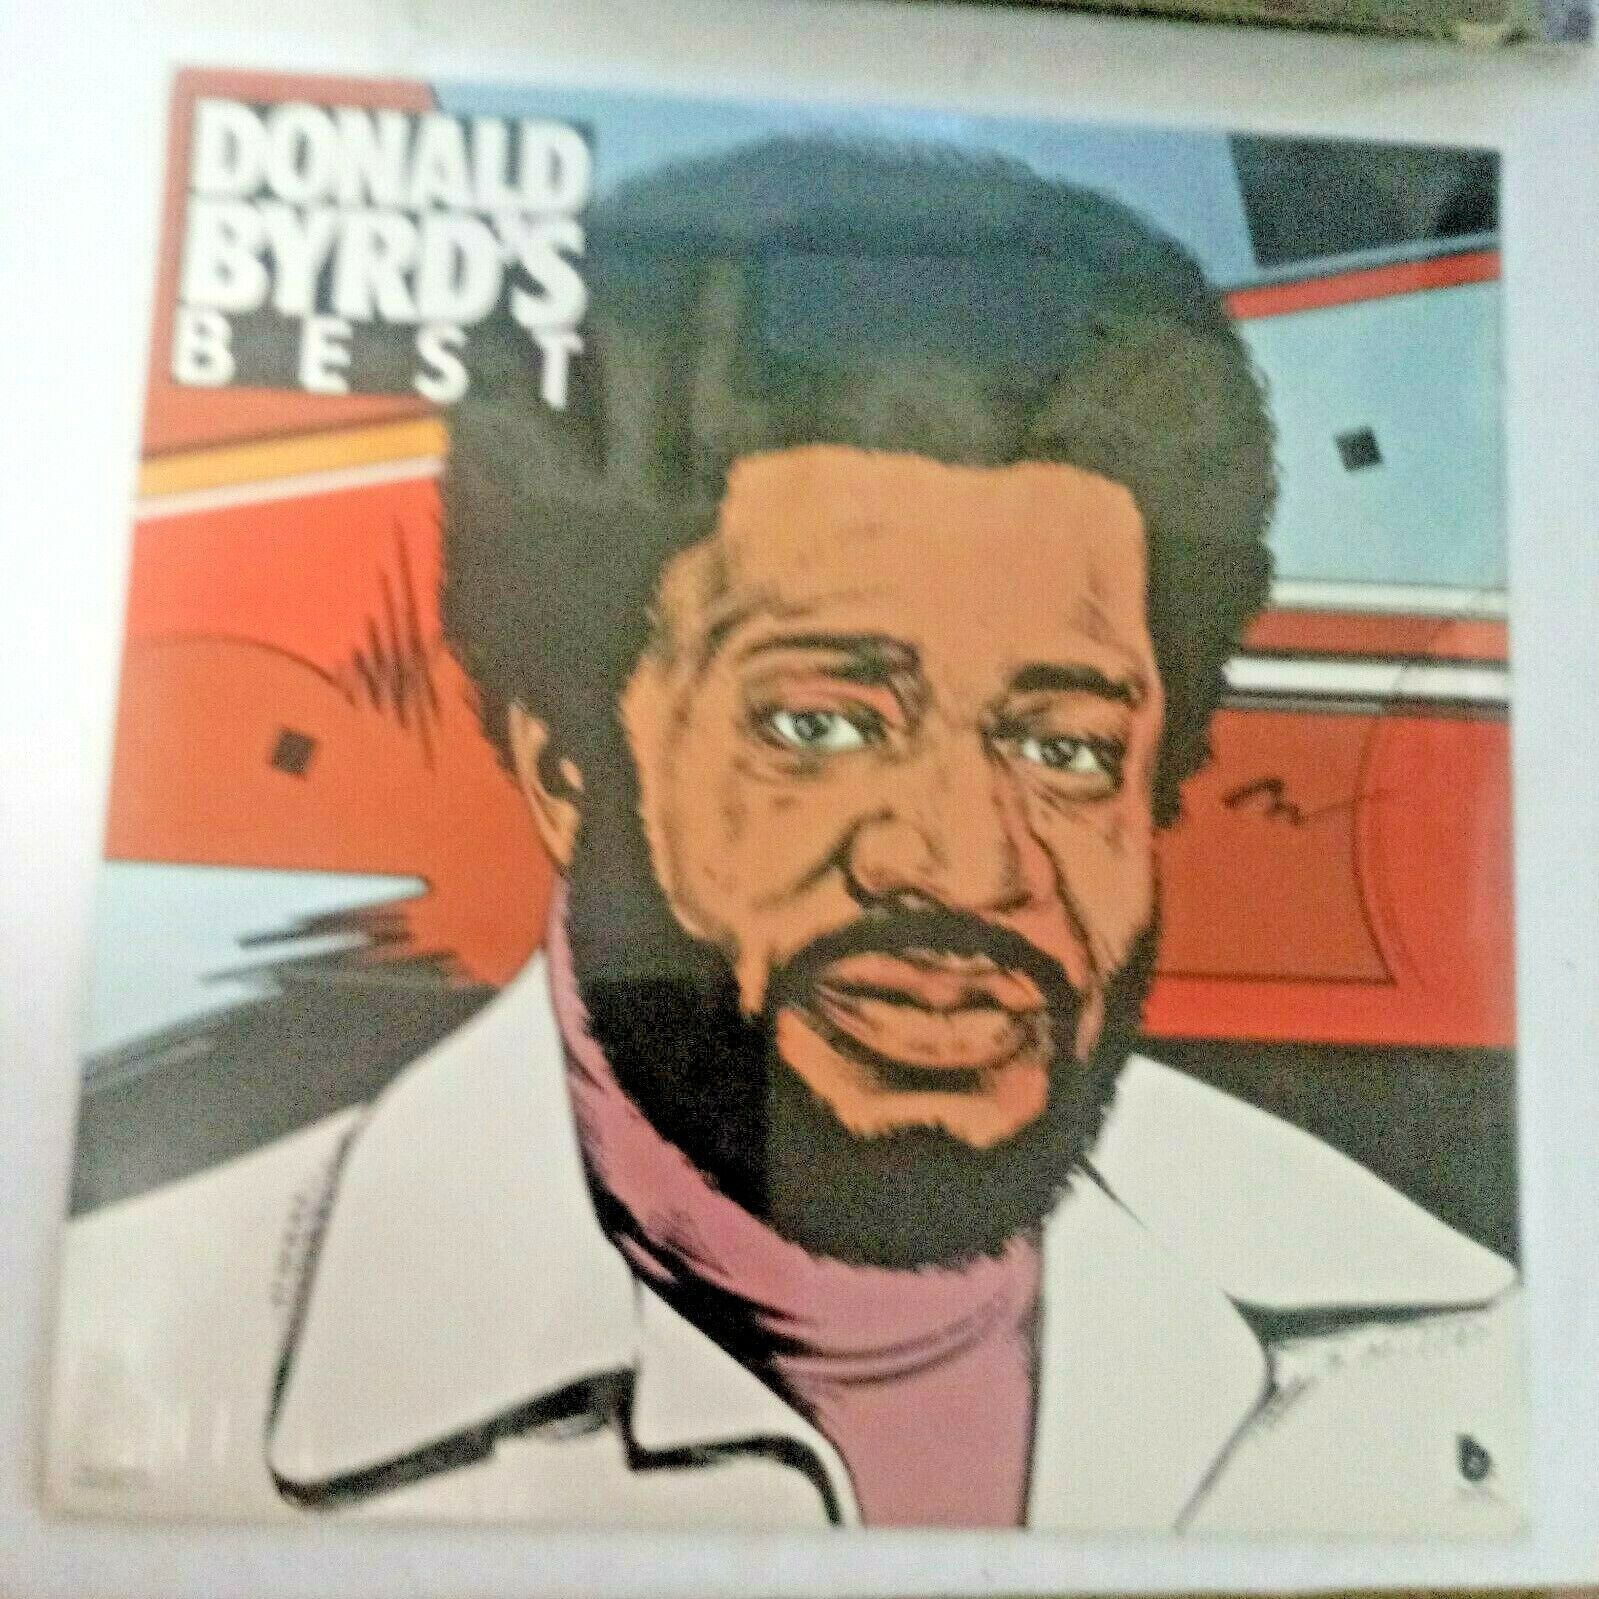 Donald Byrds New Sealed Jazz Record Lp Best Blue Note La700-g - $14.99